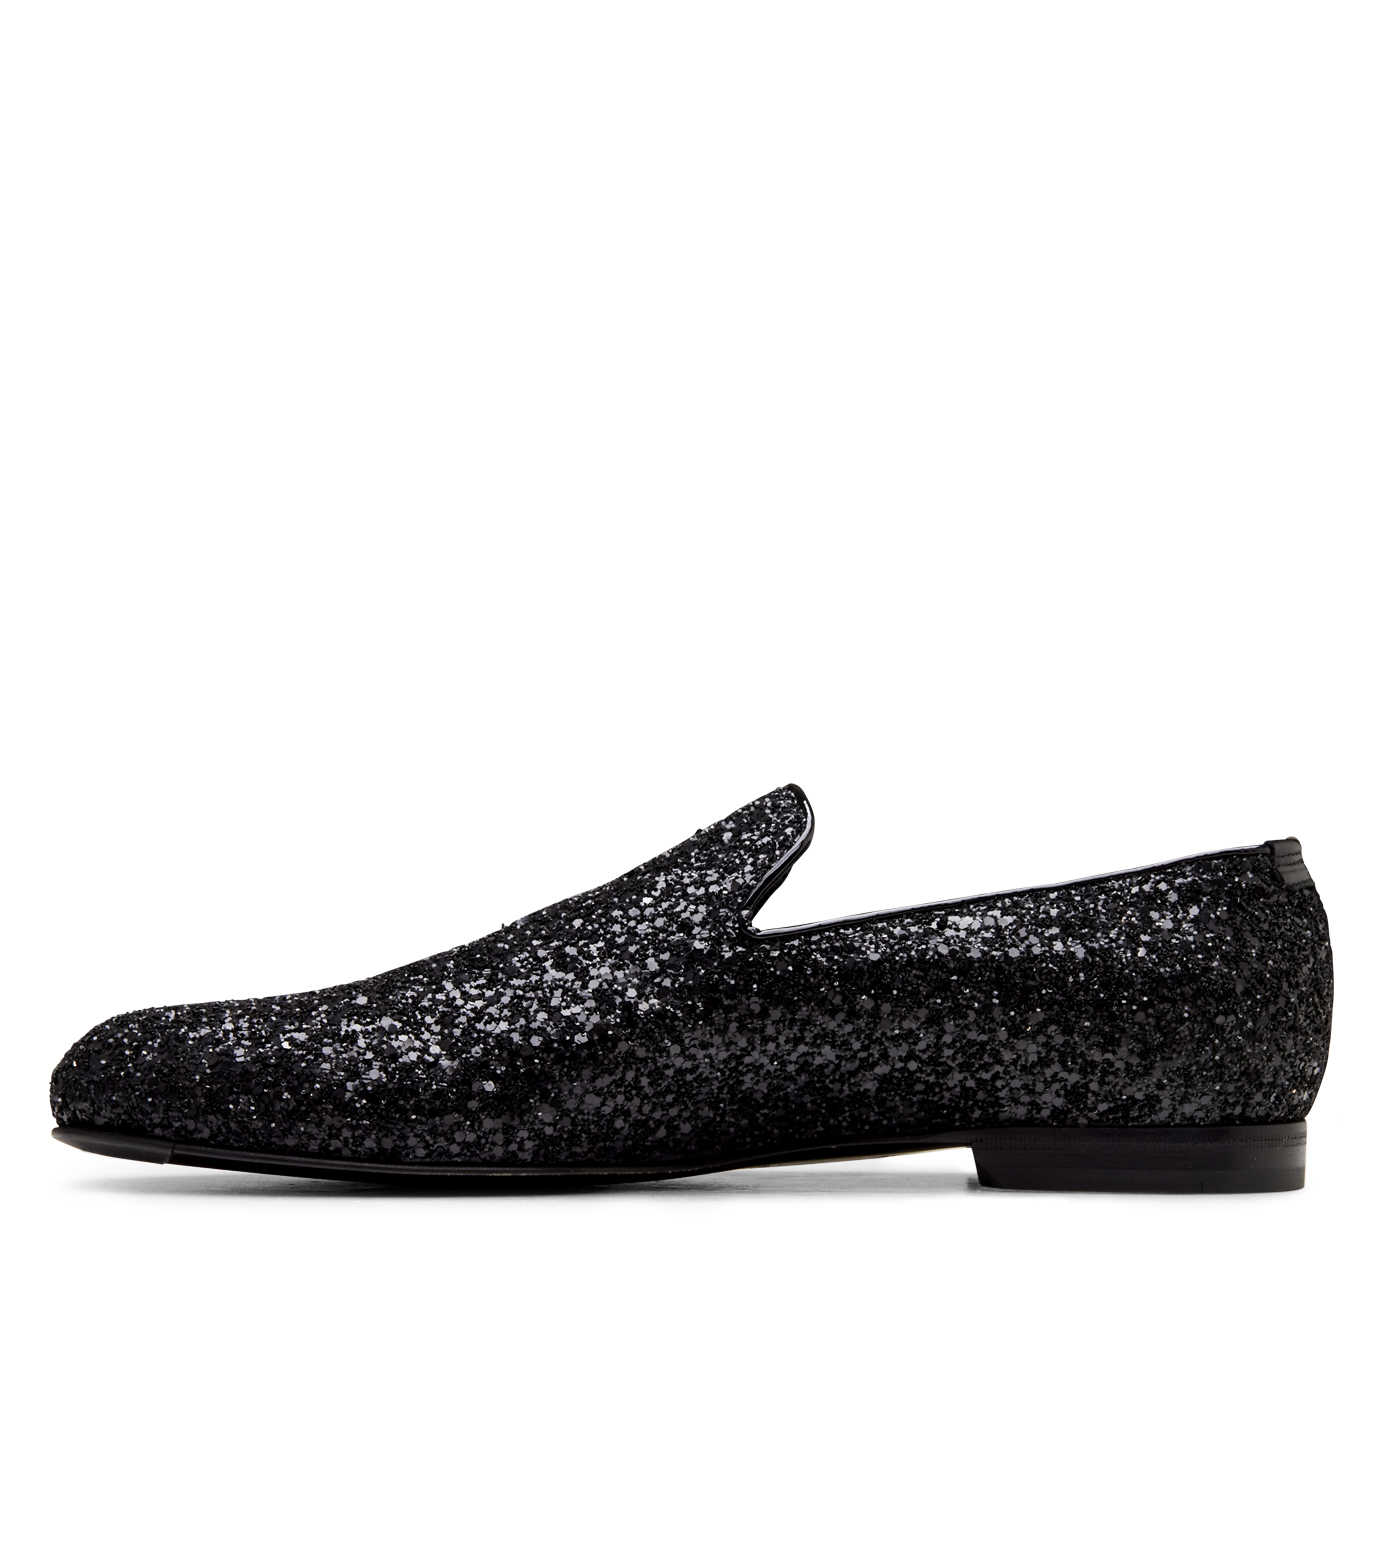 Jimmy Choo(ジミーチュウ)のGlitter Shoes-BLACK-SLOANE-CGF 拡大詳細画像2